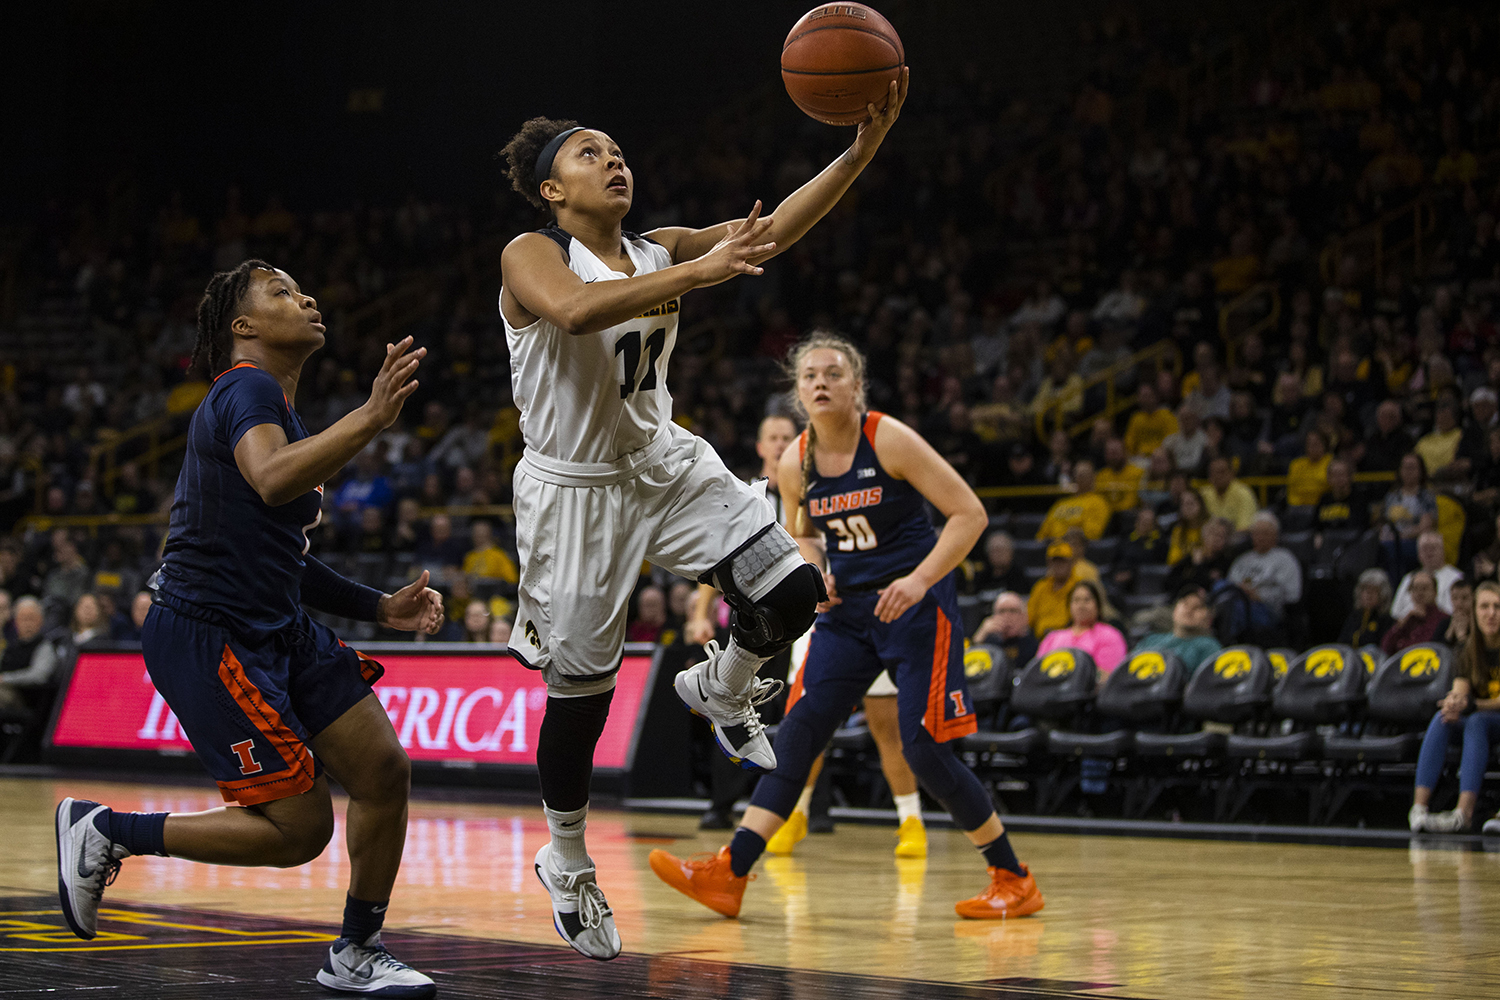 Iowa+guard+Tania+Davis+attempts+a+layup+during+the+Iowa%2FIllinois+women%27s+basketball+game+at+Carver-Hawkeye+Arena+on+Thursday%2C+February+14%2C+2019.+The+Hawkeyes+defeated+the+Fighting+Illini%2C+88-66.+